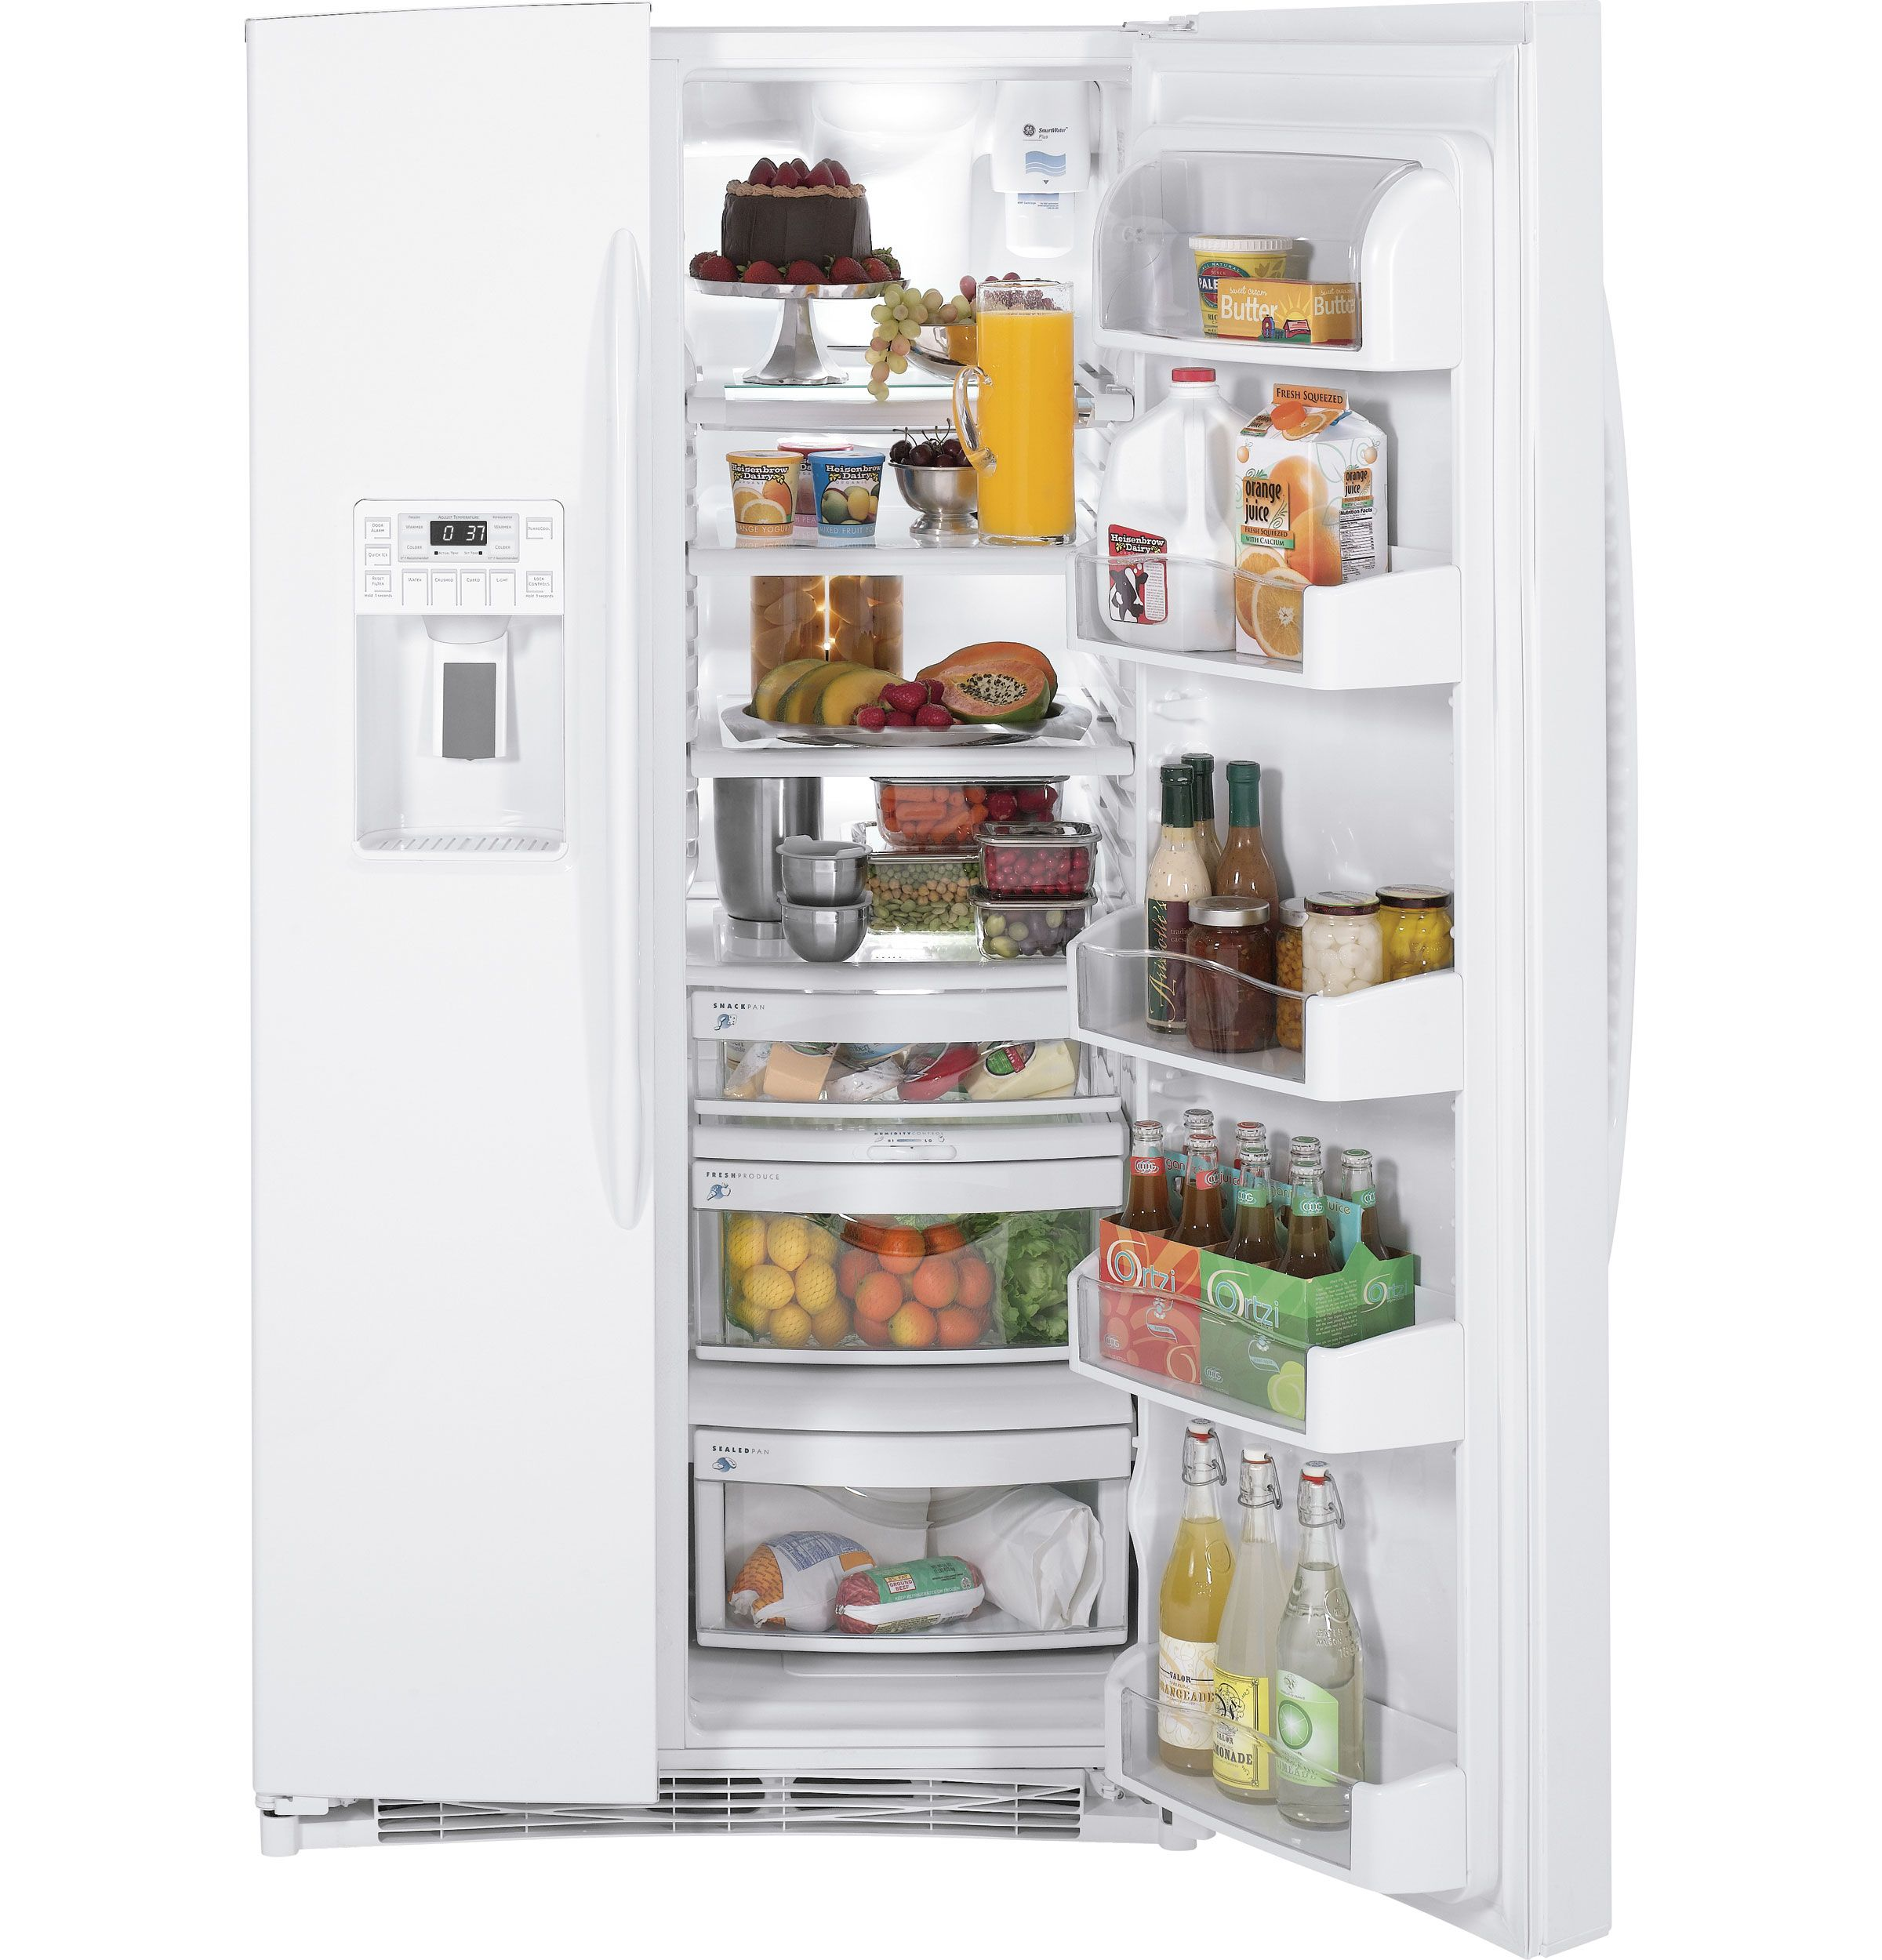 Pshf6pgzww Ge Profile Energy Star 25 9 Cu Ft Side By Side Refrigerator With Dispenser Ge Appliances Side By Side Refrigerator Refrigerator Energy Star